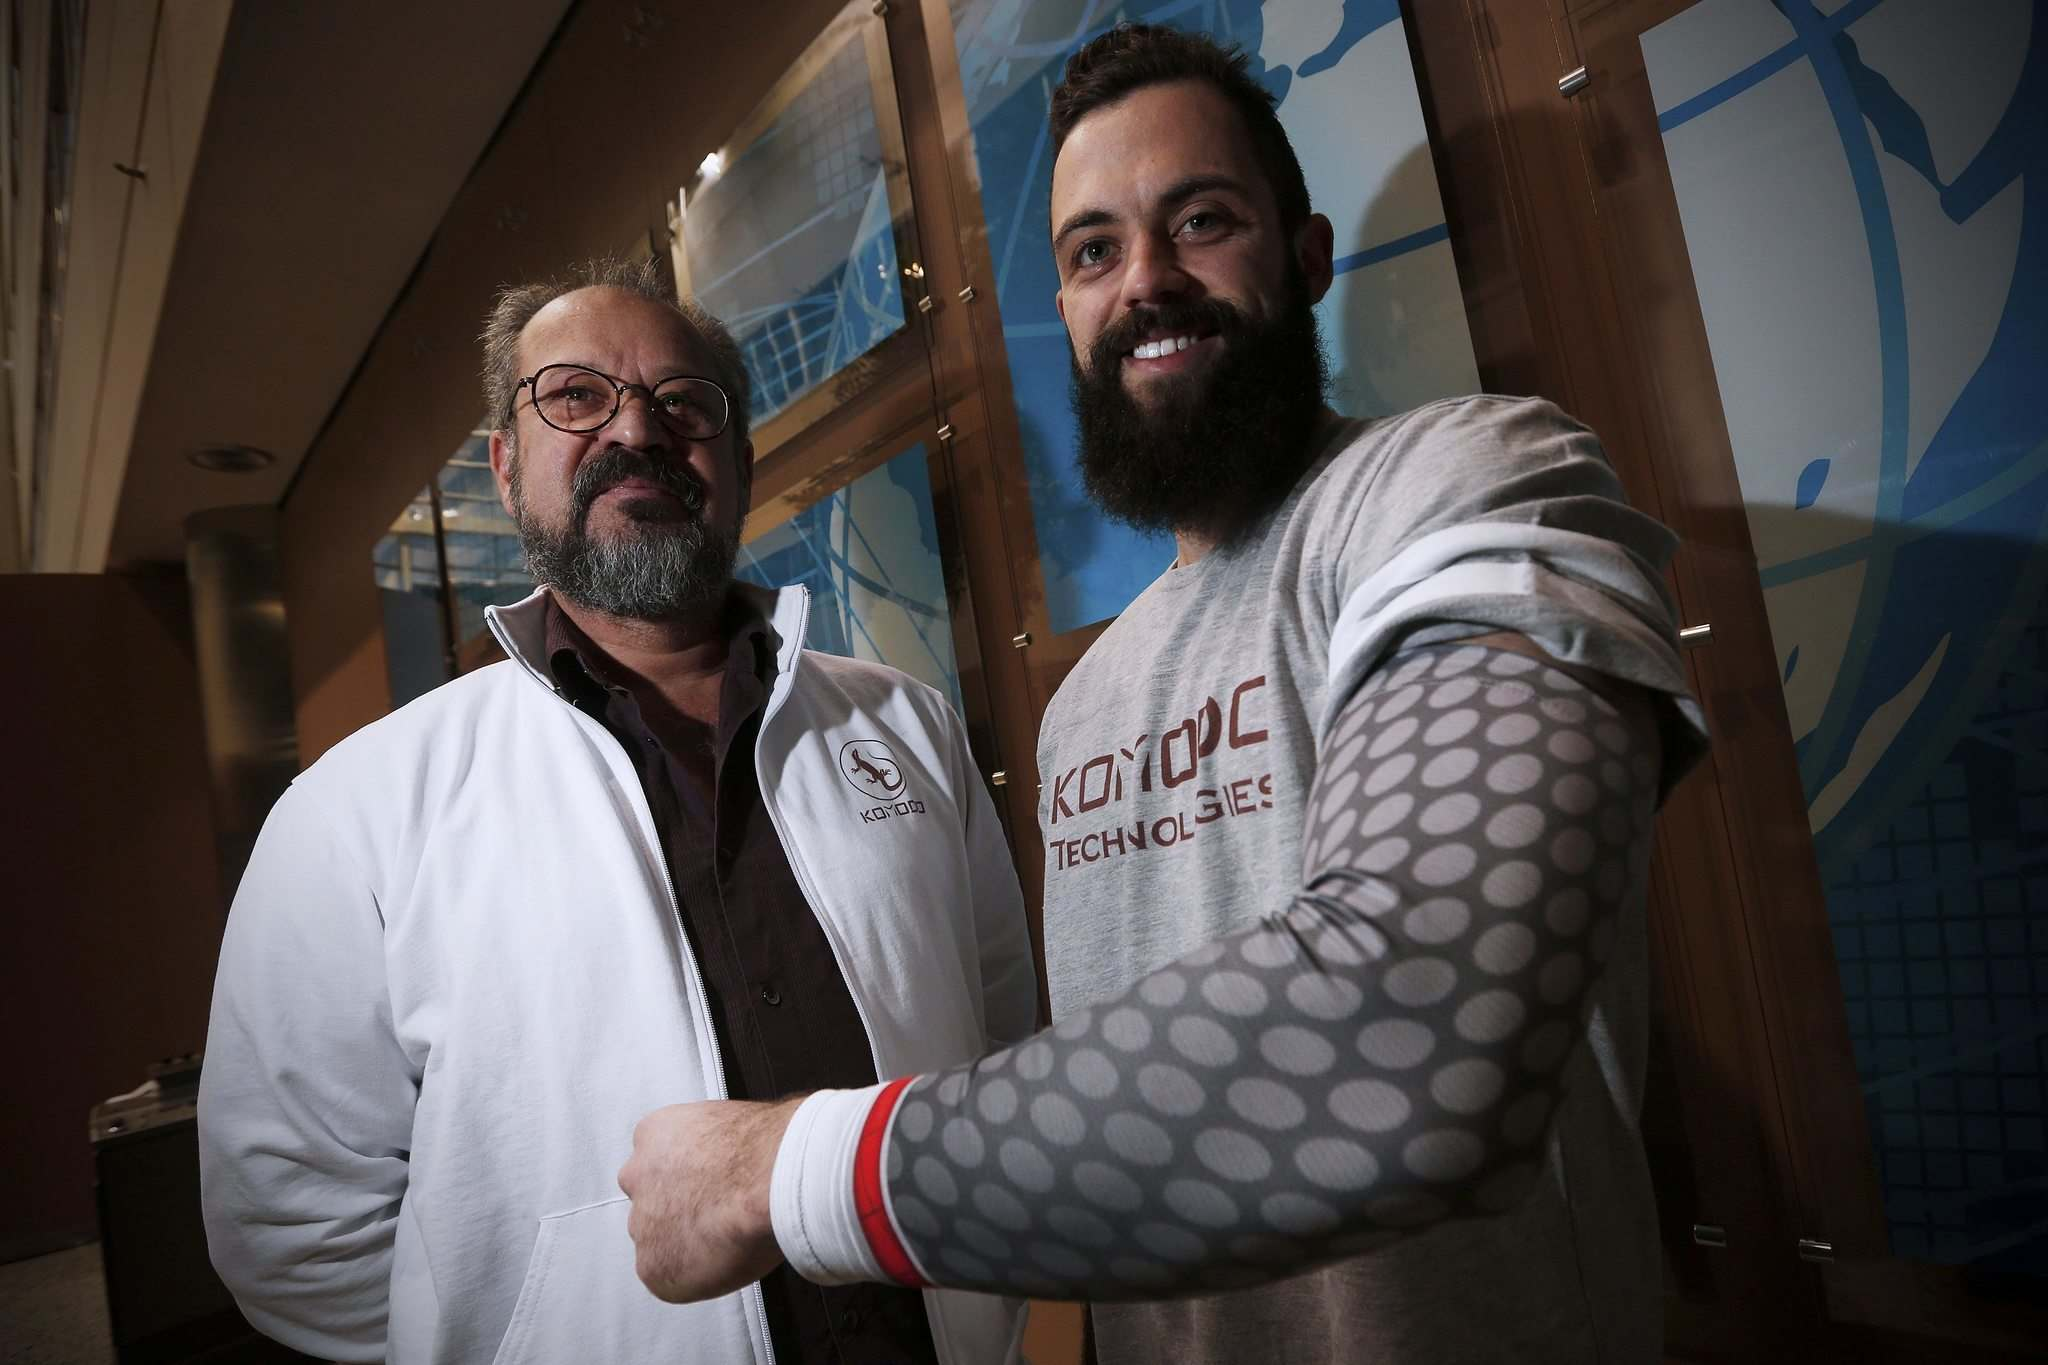 JOHN WOODS / WINNIPEG FREE PRESS</p><p>Larry (left) and Elvis Goren, of Winnipeg company Komodo Technologies, will be in Las Vegas for the Consumer Electronics Show where they will be promoting the compression sleeve they developed that interfaces with fitness devices.</p>